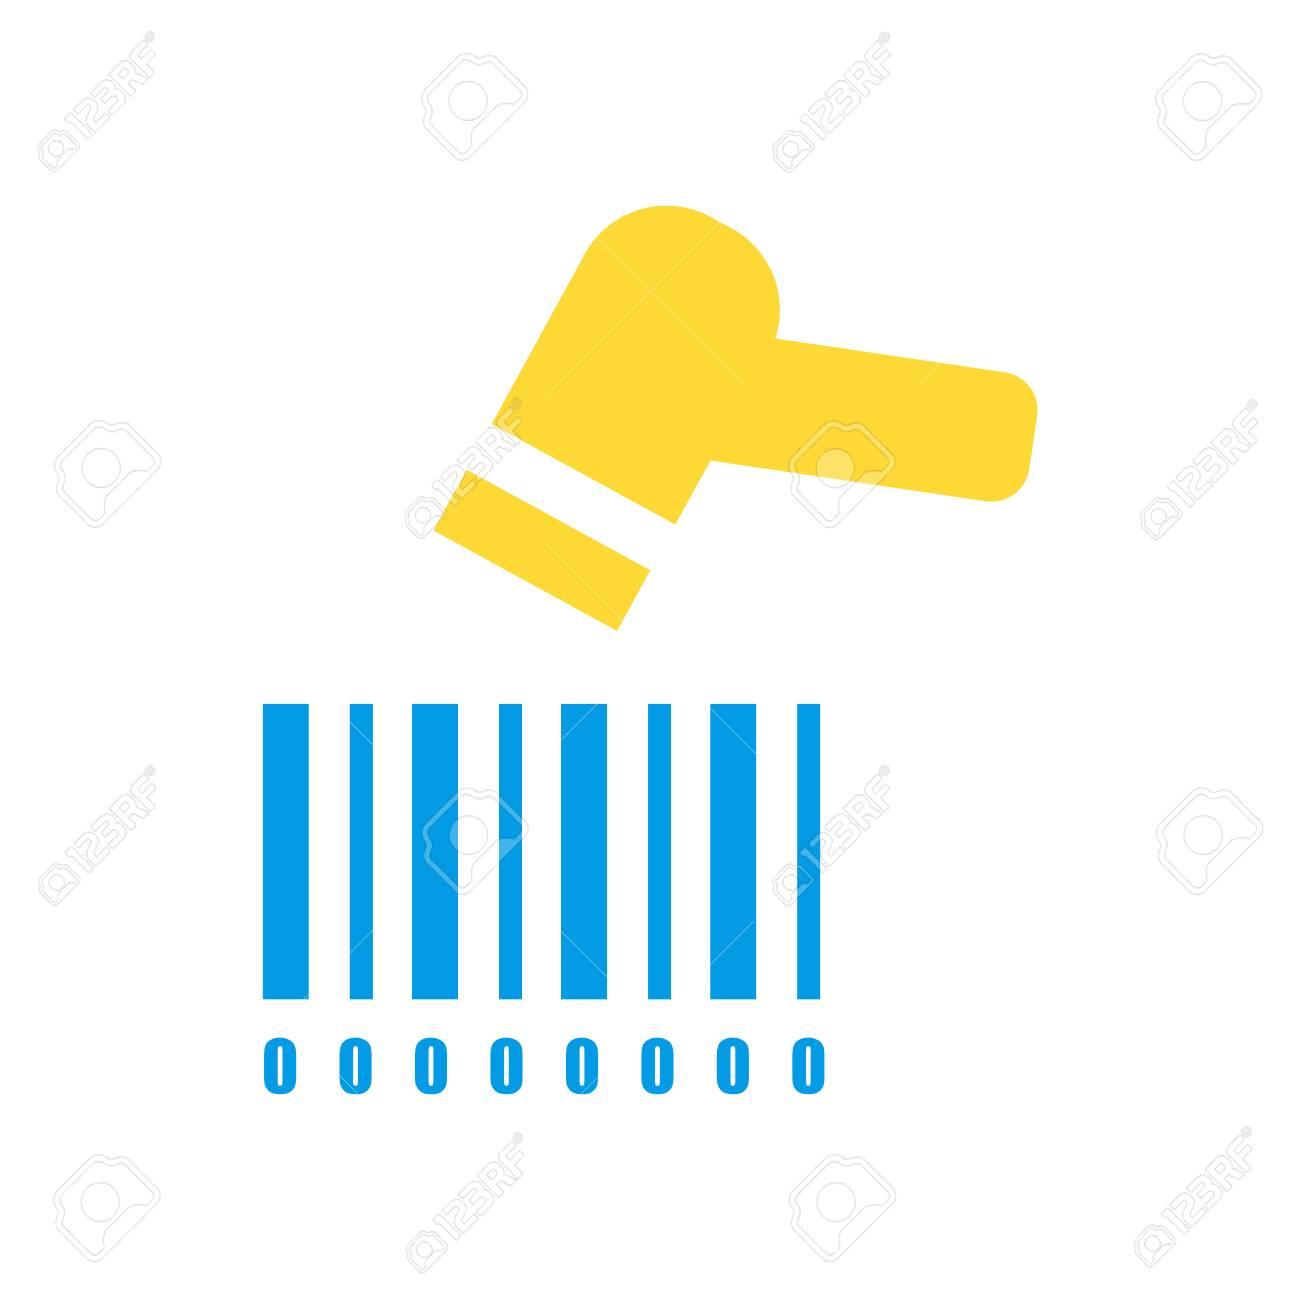 Barcode scanner icon vector isolated on white background for